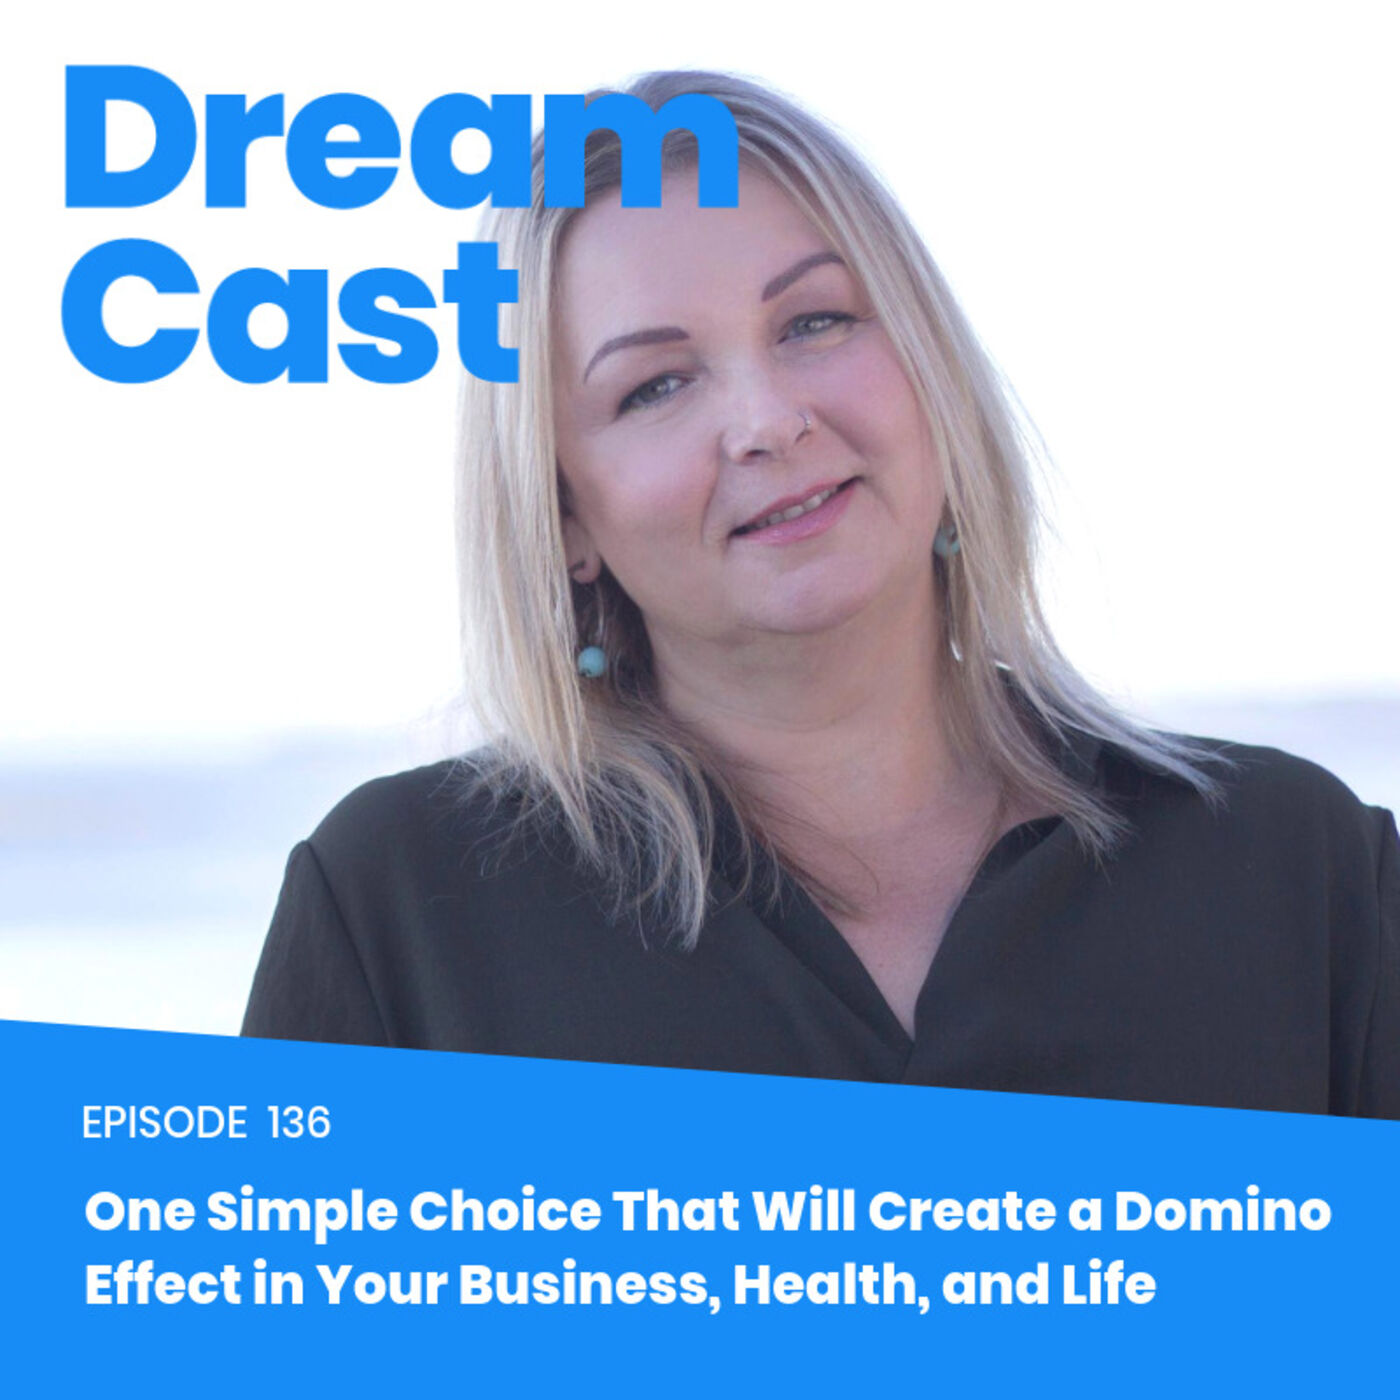 Ep 136: One Simple Choice That Will Create a Domino Effect in Your Business, Health, and Life with Alison Donaghey